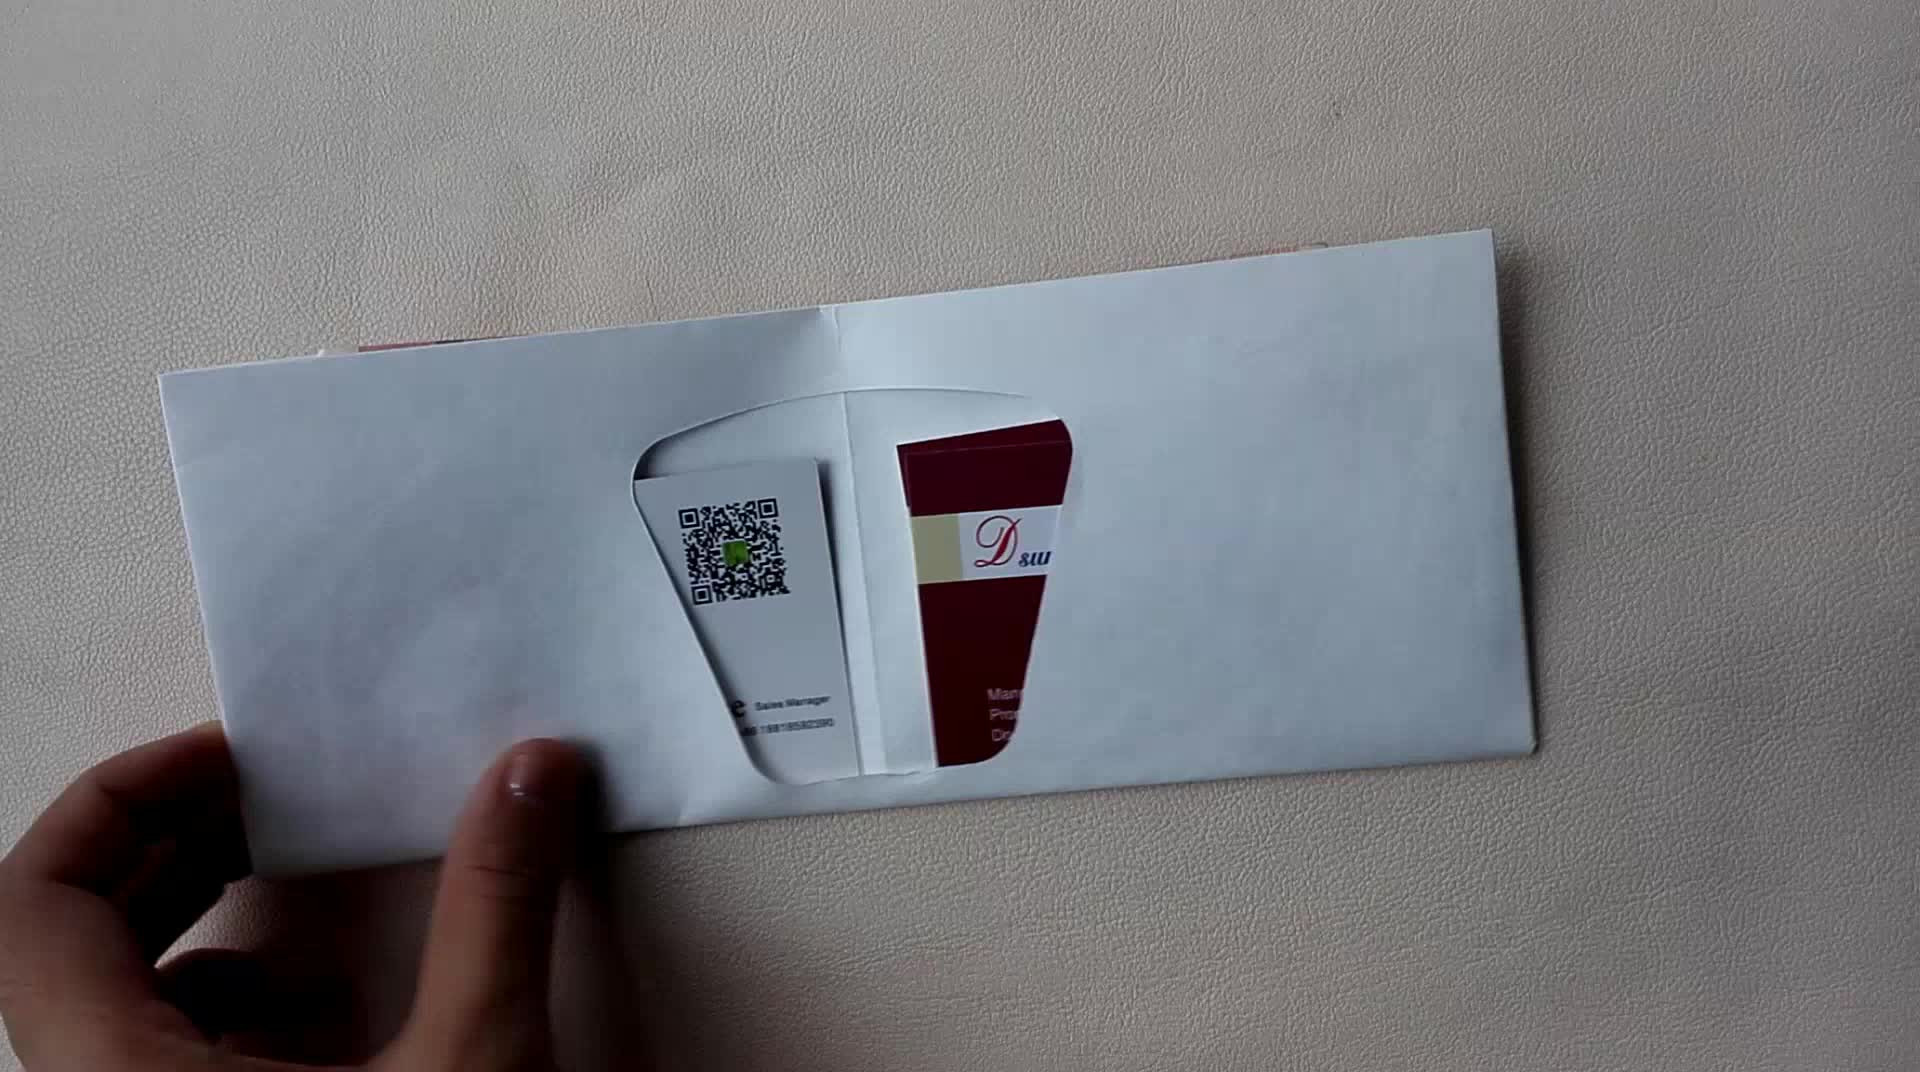 Best ideas about Tyvek Wallet DIY . Save or Pin Tyvek Wallet Diy Tyvek Mighty Paper Wallets Buy Tyvek Now.